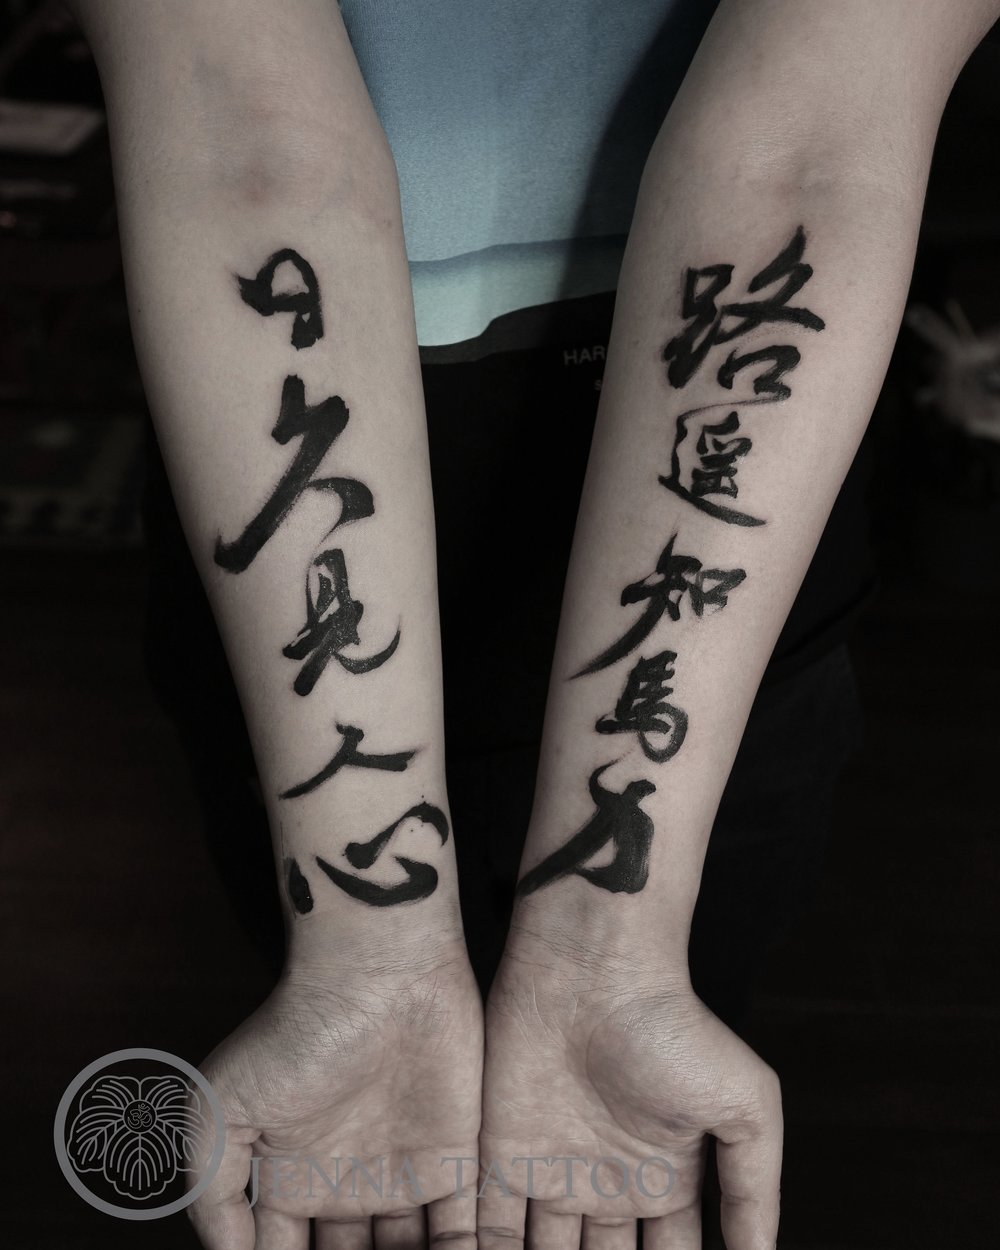 2018-fridays-tattoo-hong-kong-jenna-chinese-calligraphy-4.jpg